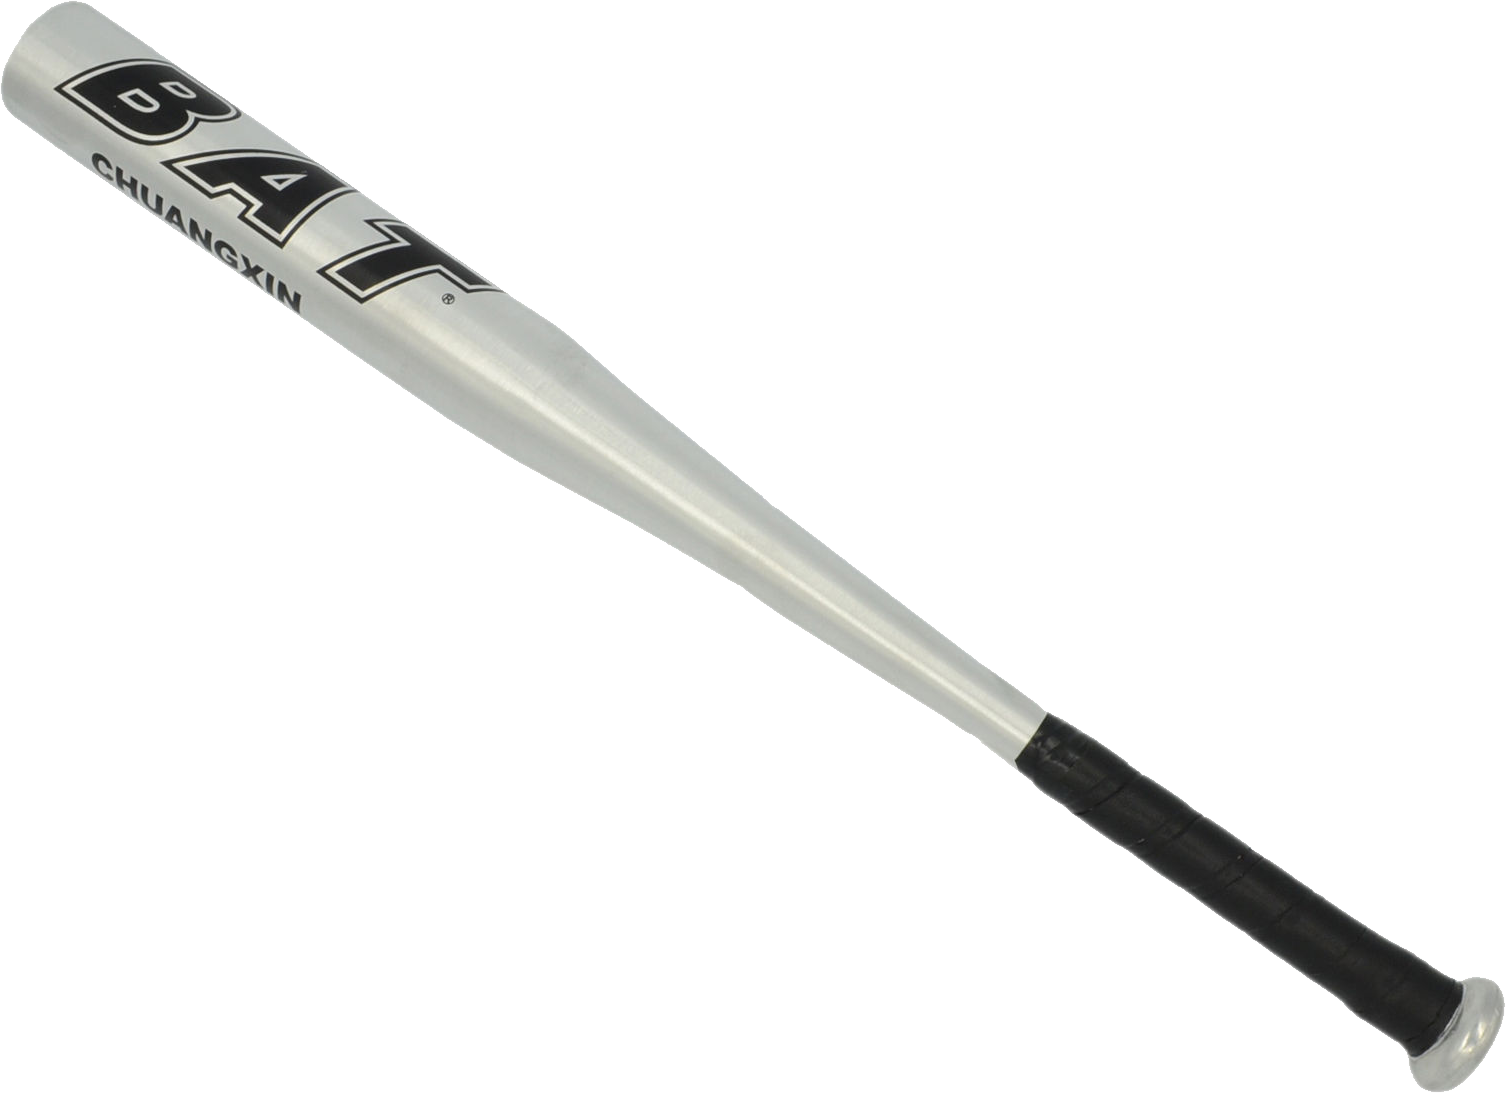 Baseball bat clipart transparent background